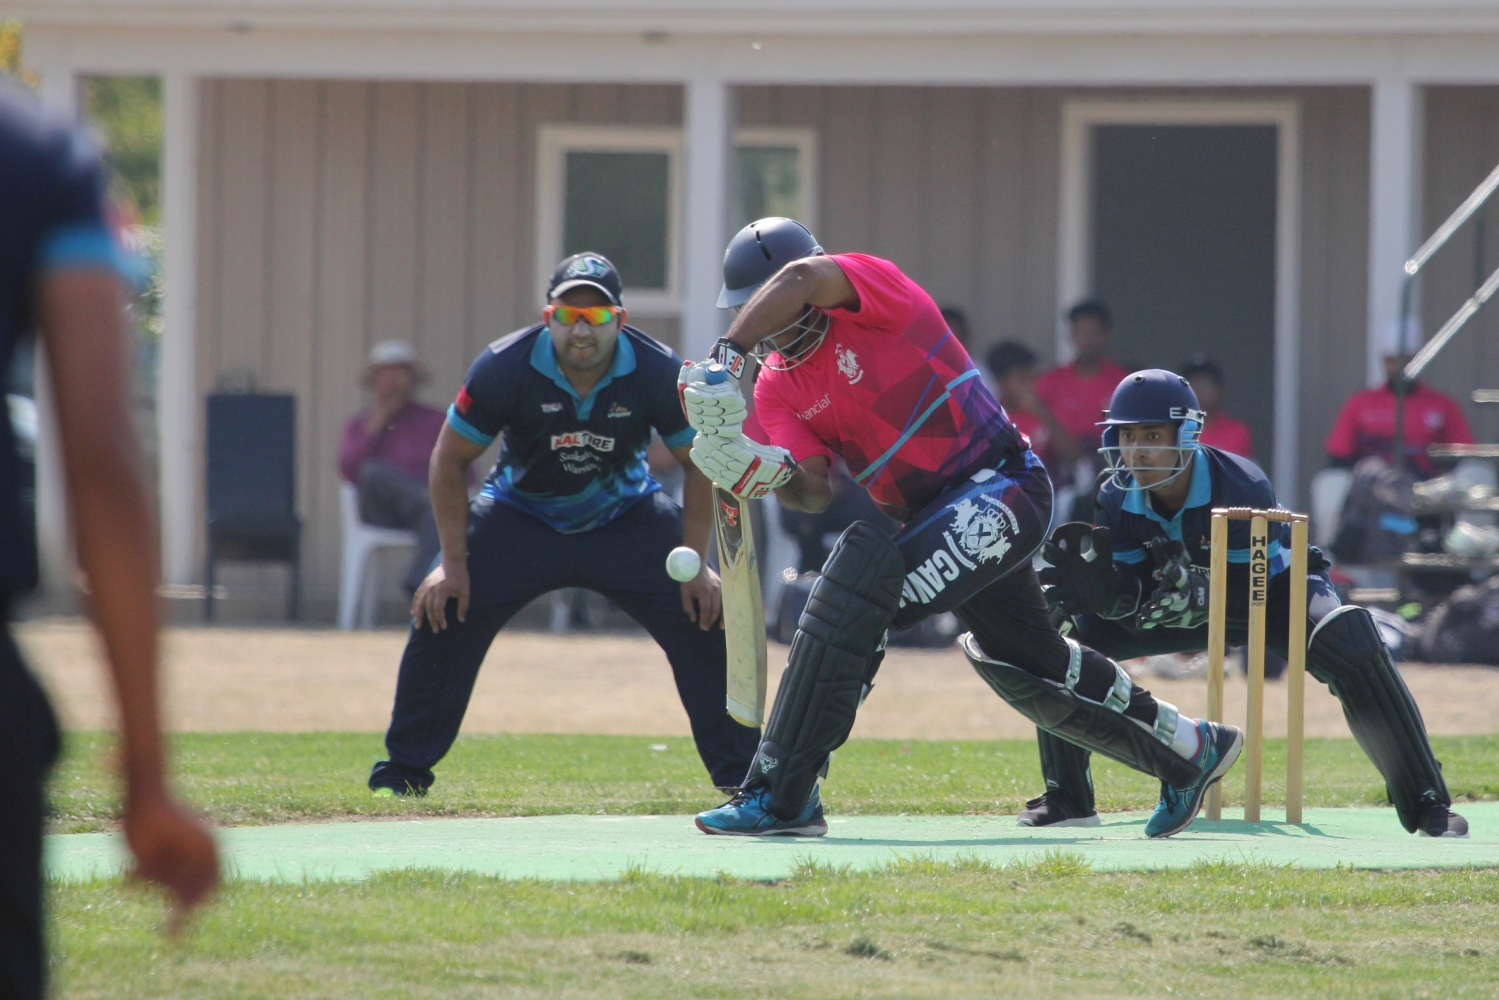 saskatchewan-cricket -association-to-host-2017-provincial-t20-finals-this-sunday.jpg